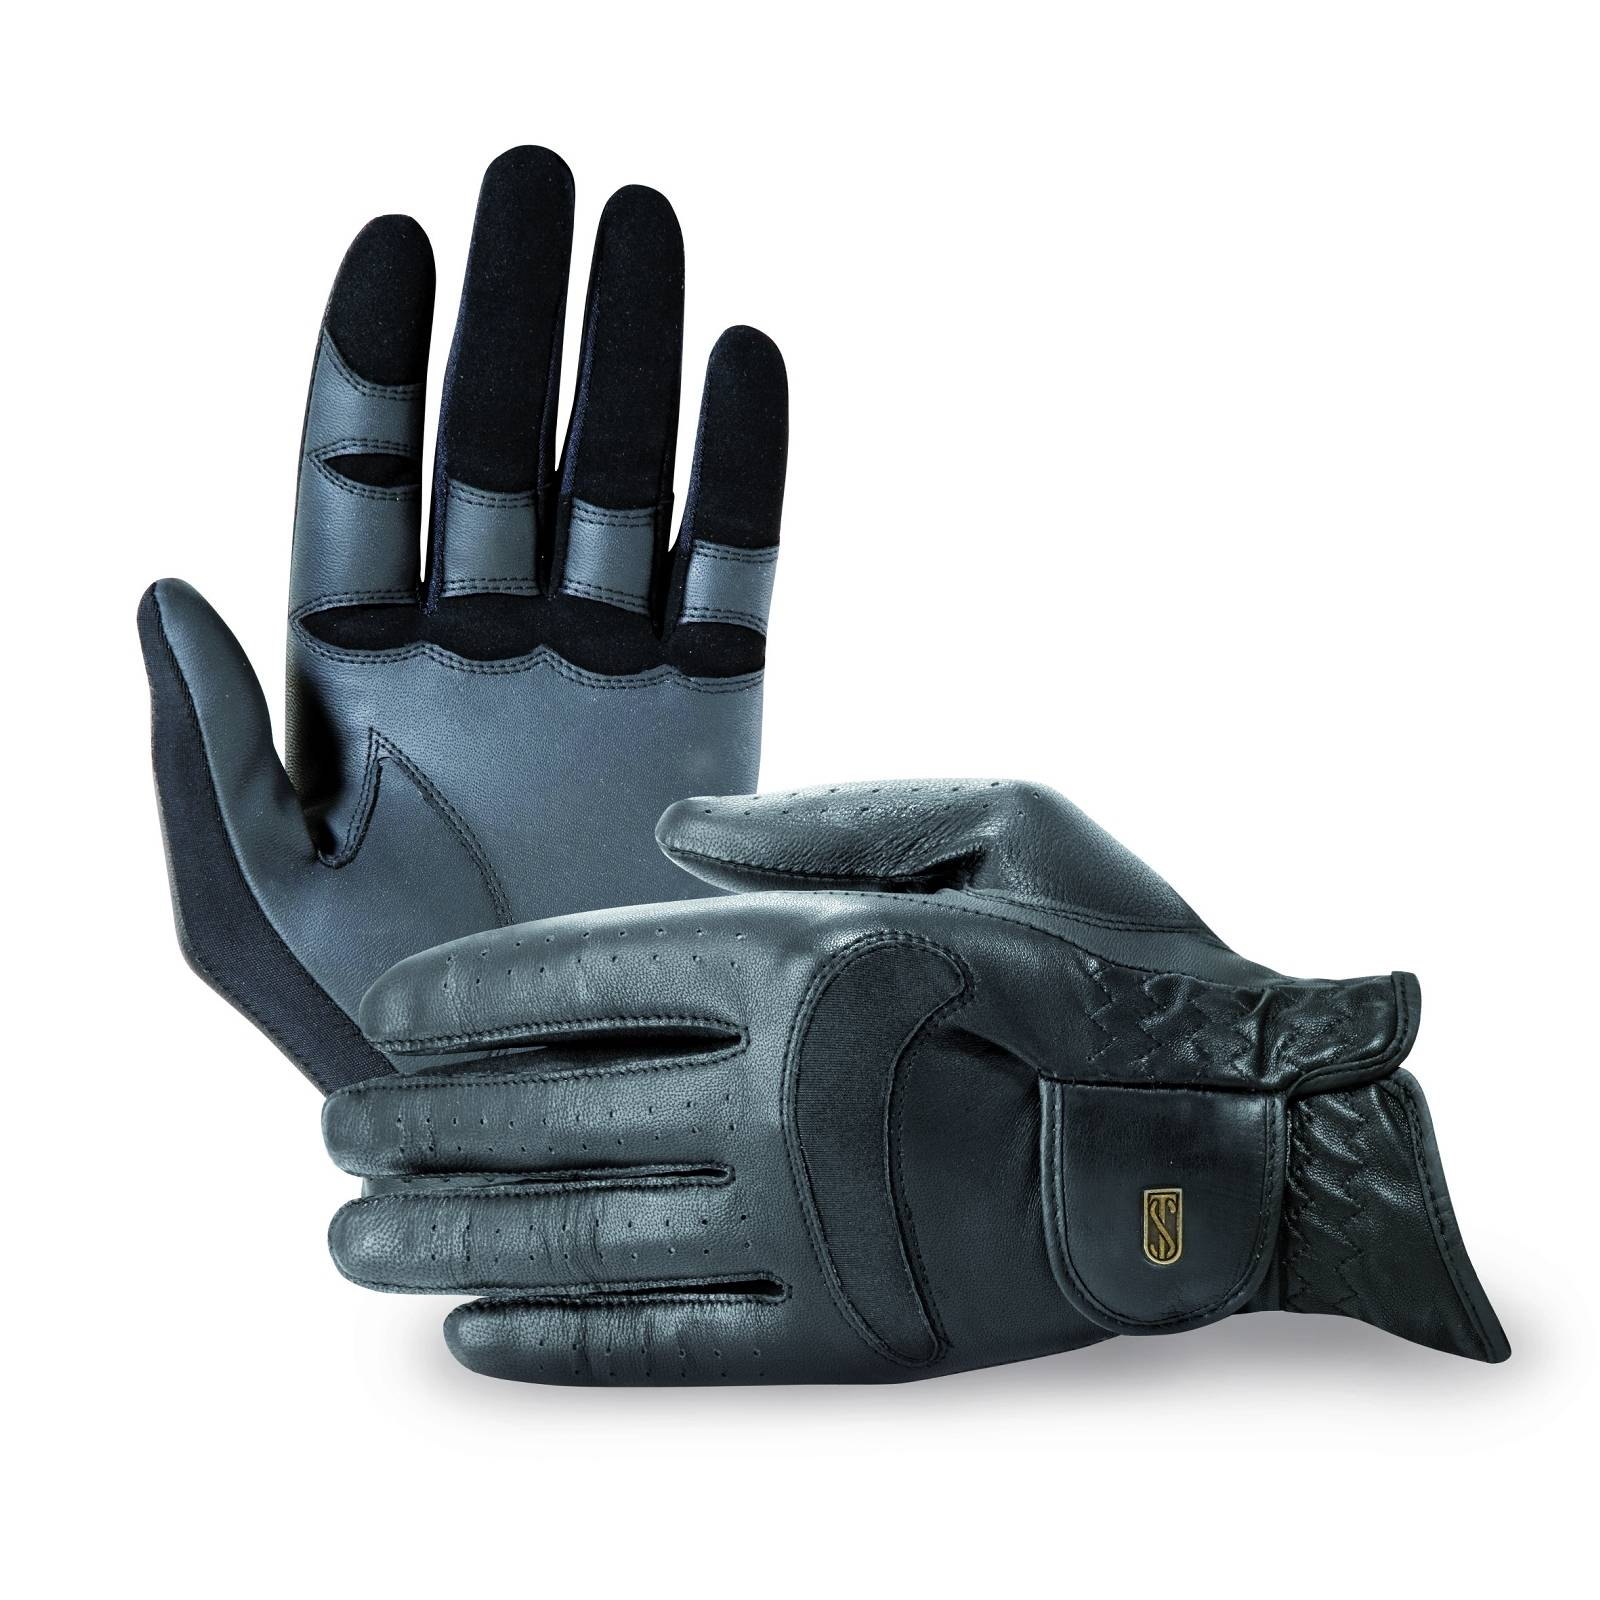 Tredstep Ireland Dressage Pro Gloves